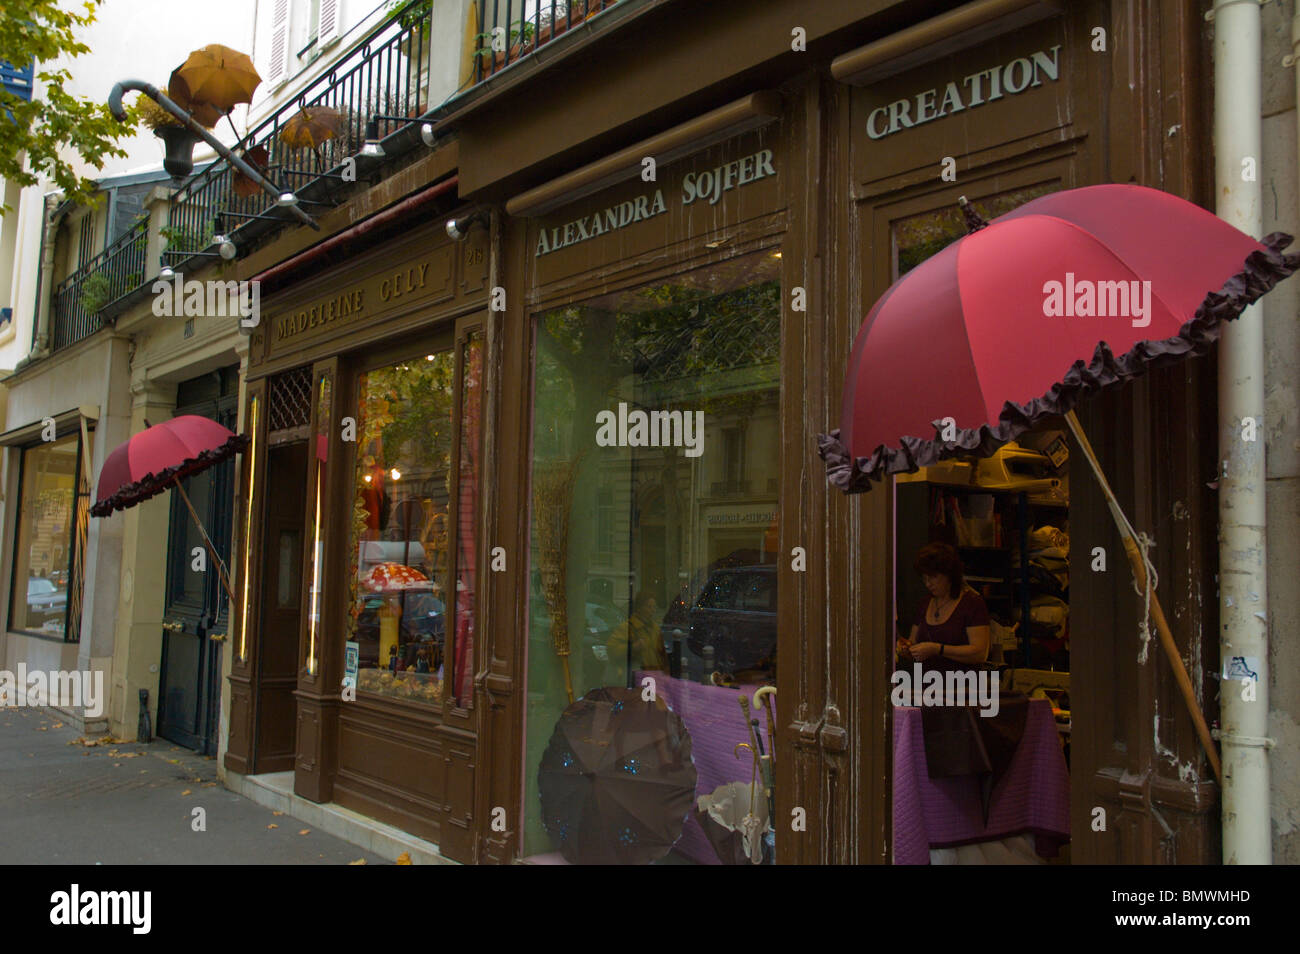 madeleine gely umbrella shop exterior st germain des pres central stock photo royalty free. Black Bedroom Furniture Sets. Home Design Ideas